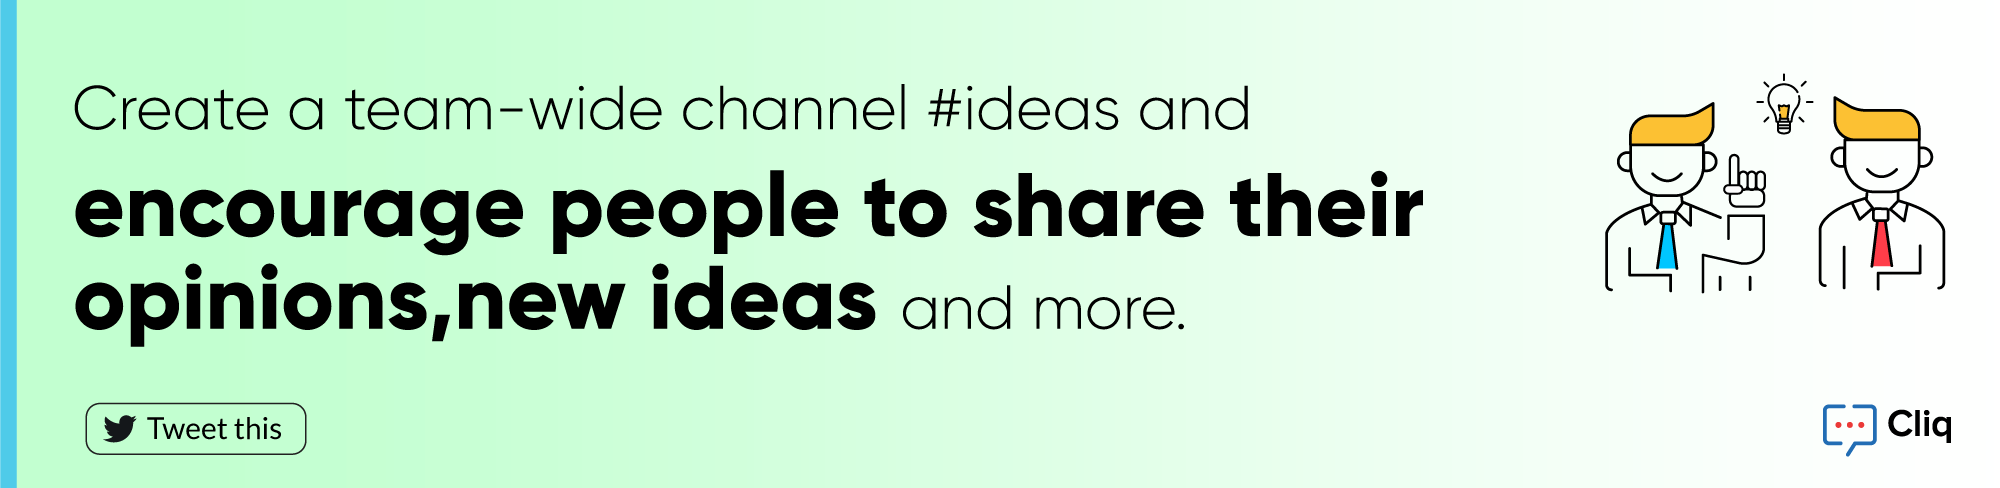 Create team-wide channel #ideas on Cliq and encourage people to share their opinions, new ideas and more.